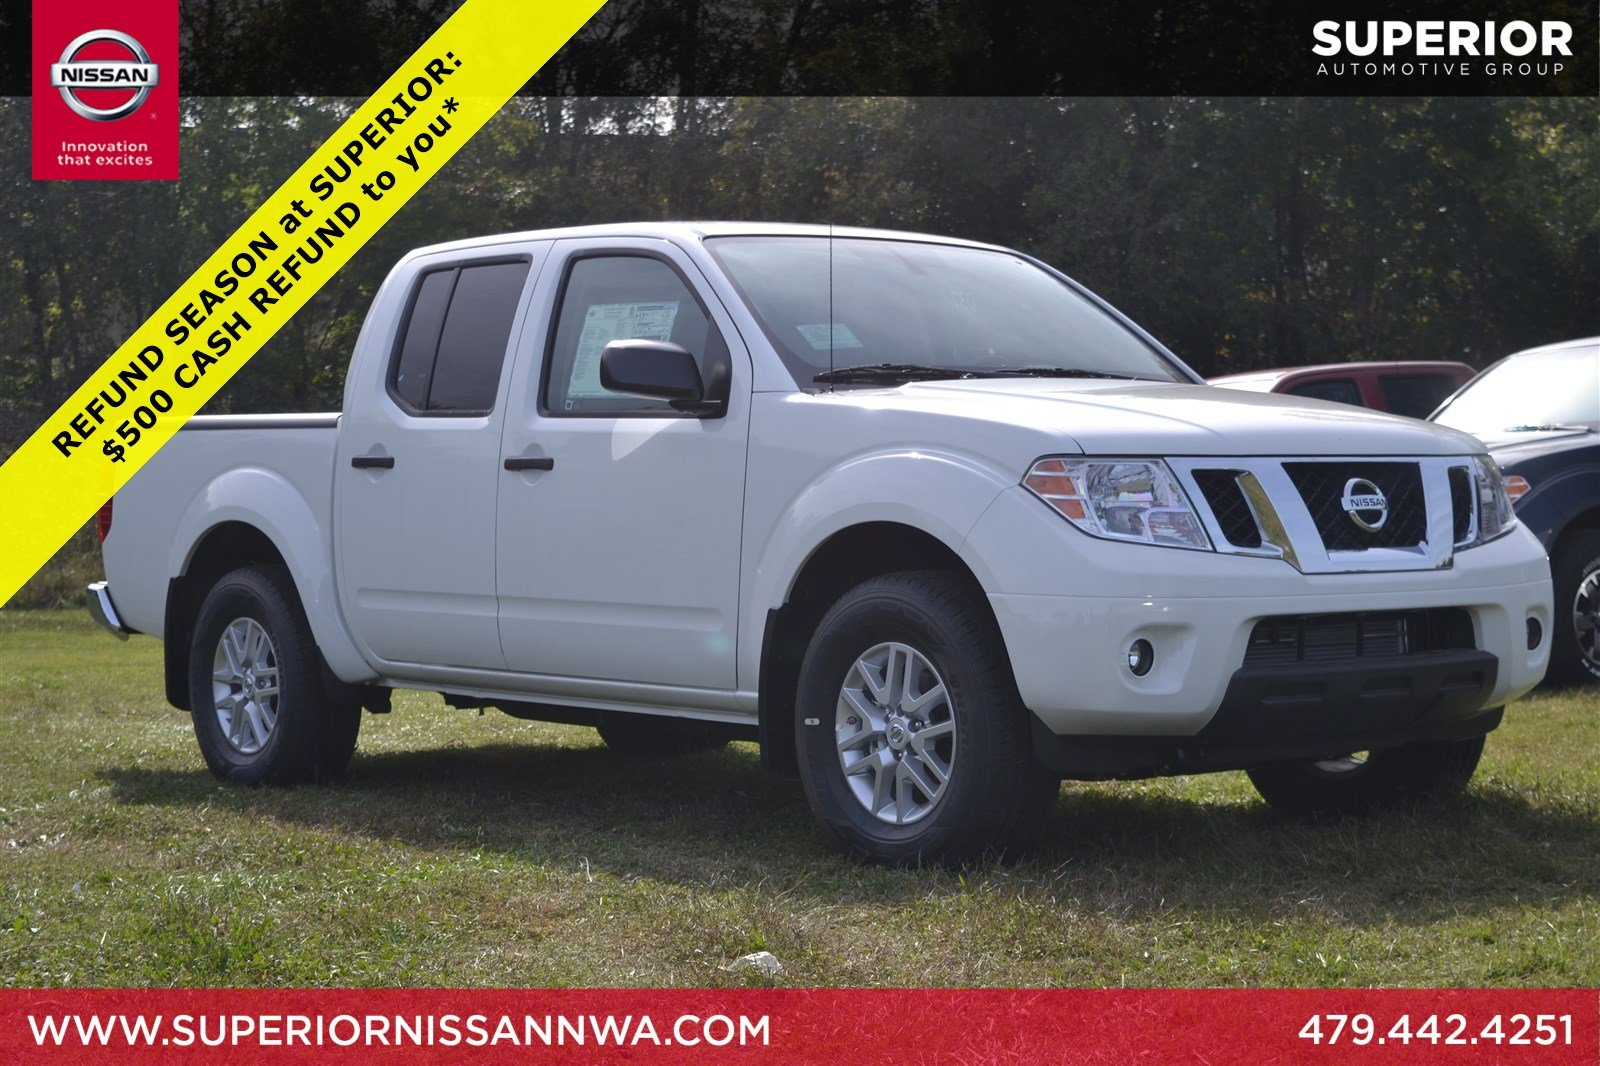 New 2019 Nissan Frontier Sv 4wd Crew Cab Crew Cab Pickup In